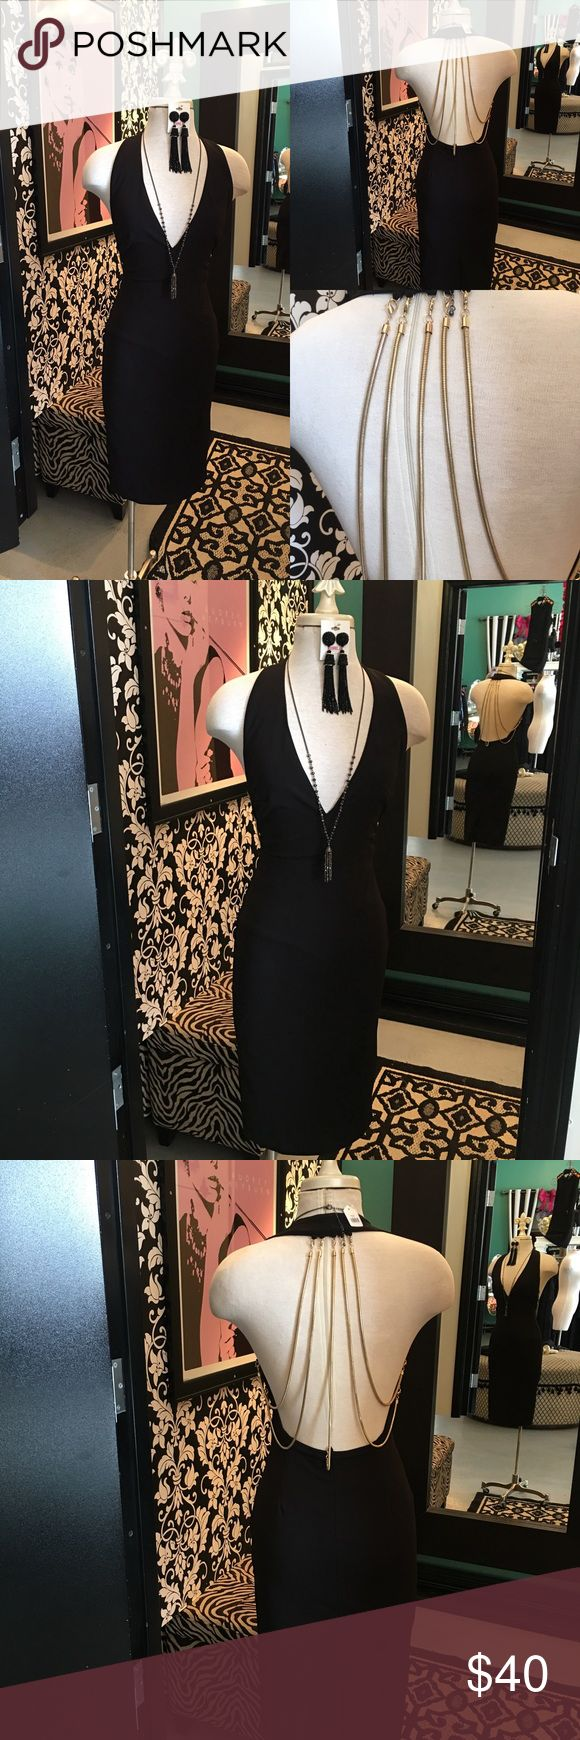 Chain Back Dress by Xtaren Hello, and Welcome to GIRLe Boutique 🌺 This is my Fabulous Shoppe' here on Poshmark👗.  All my Items are New With Tags & Handpicked by Me - Christina 💋 Amazing Quality at Rock Bottom Prices .             Sale Price: $40  -  Reg: $90  Fabric : 95% Polyester- 5% Spandex Beautiful Gold Chain Back Dress - Halter Like Design- Side Zipper - Low V - Front style - Dress is Lined  🌺Accessories Not Included 🌺 Thanks For Looking & Always Let your Clothes get All the…